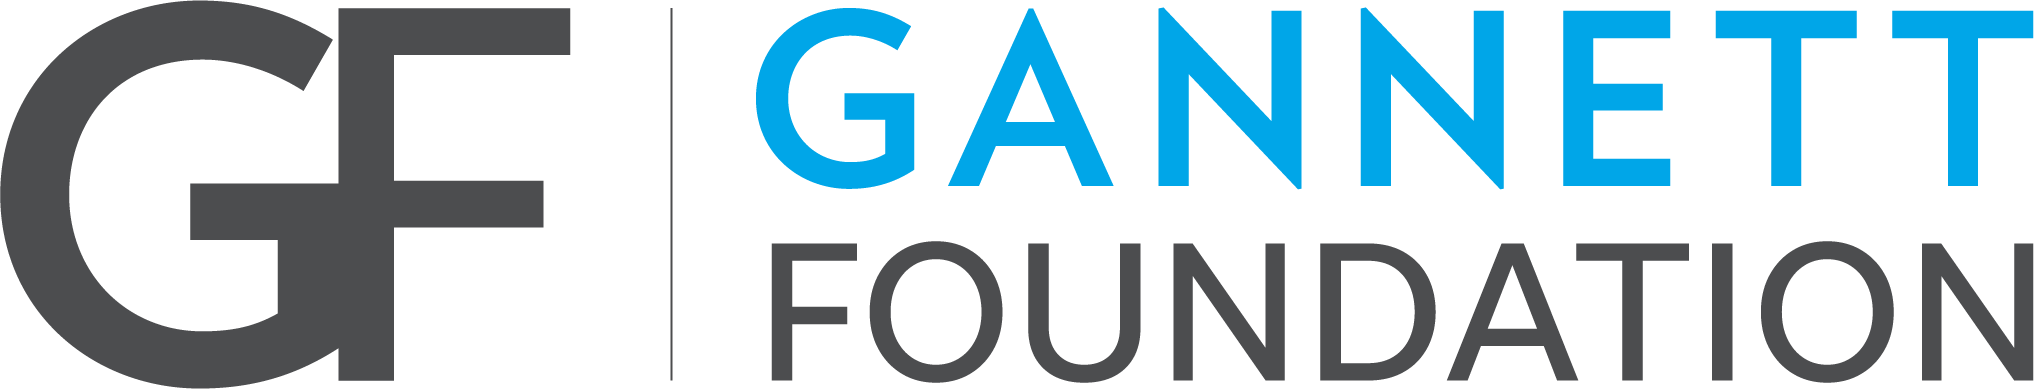 Gannett_Foundation_Regular_PrimaryNEW-eS